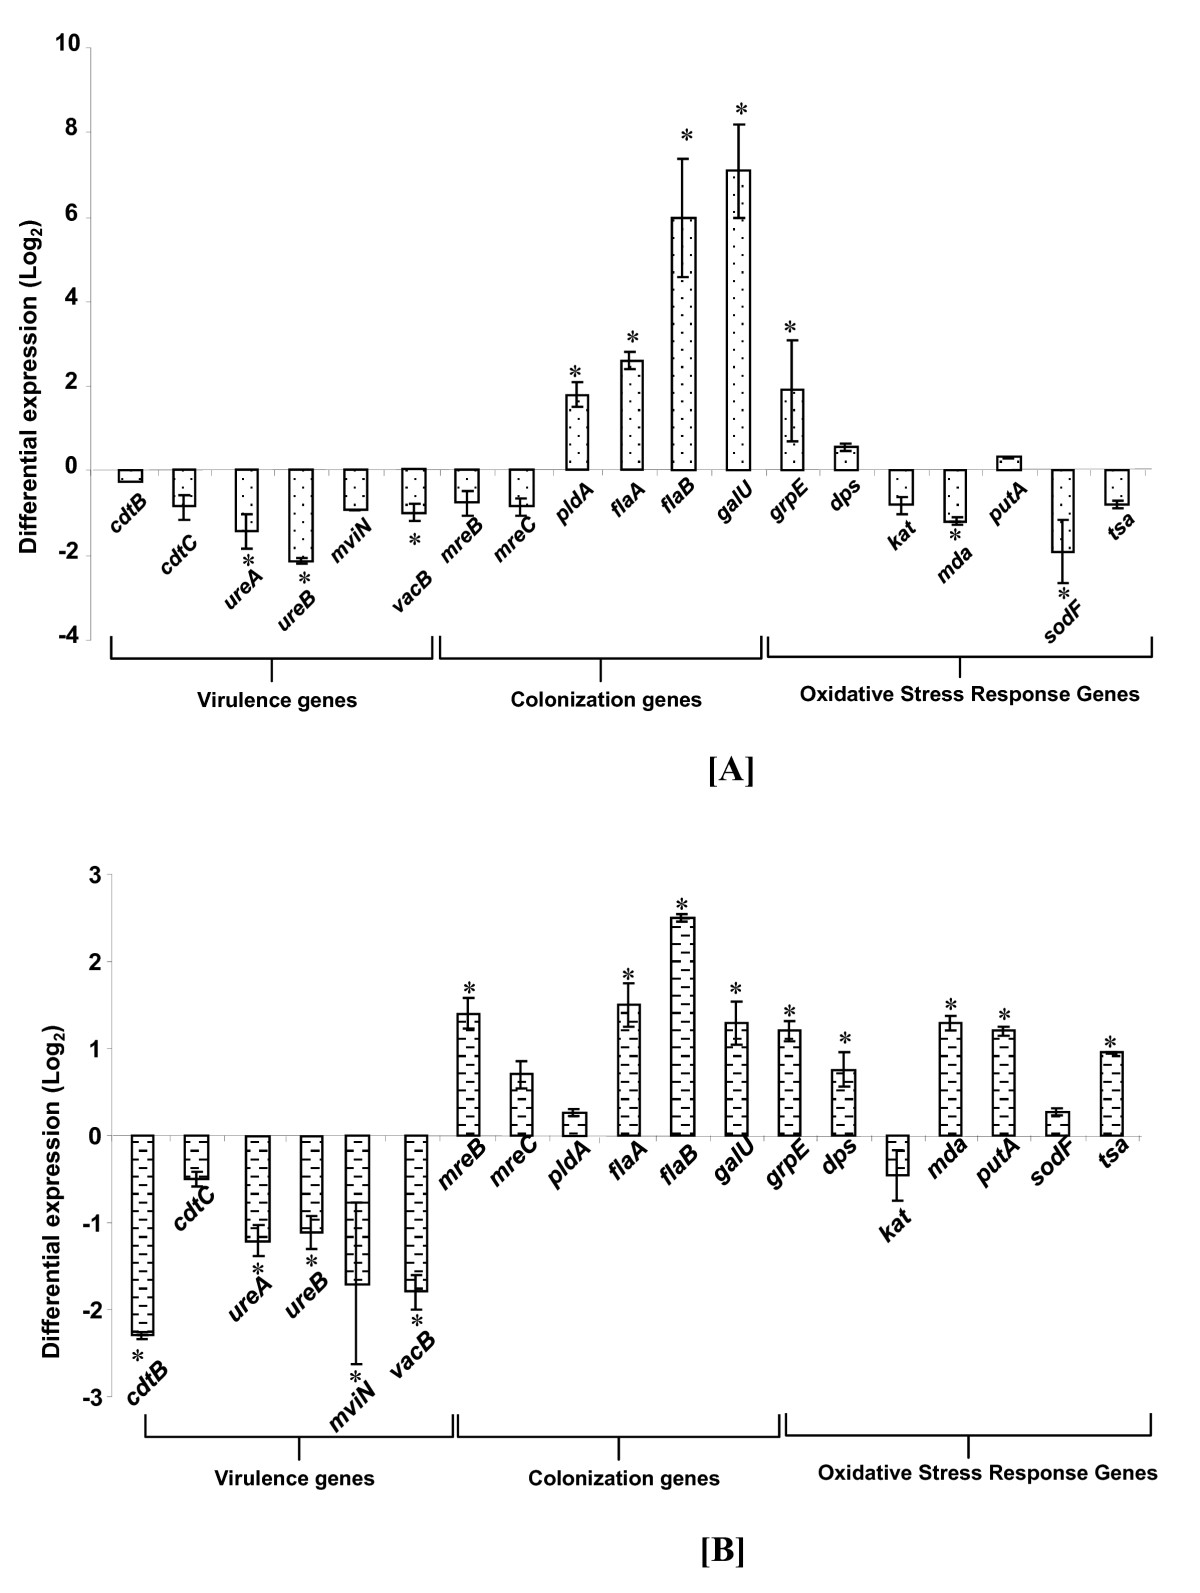 http://static-content.springer.com/image/art%3A10.1186%2F1477-5956-10-27/MediaObjects/12953_2012_Article_340_Fig4_HTML.jpg